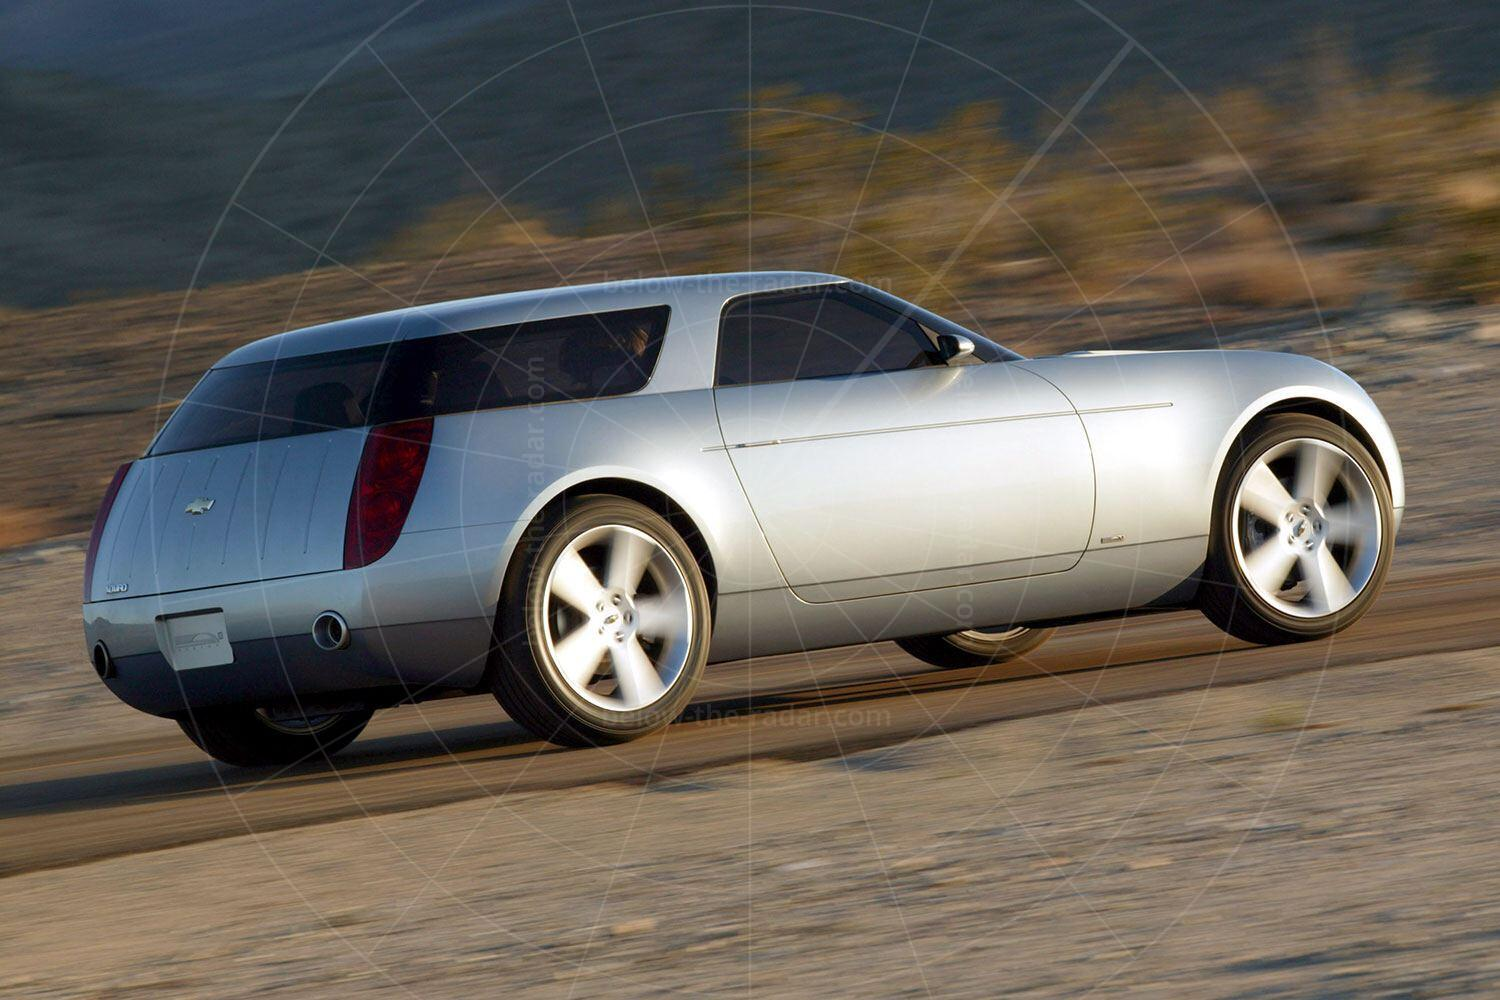 The 2004 Chevrolet Nomad concept Pic: GM | The 2004 Chevrolet Nomad concept